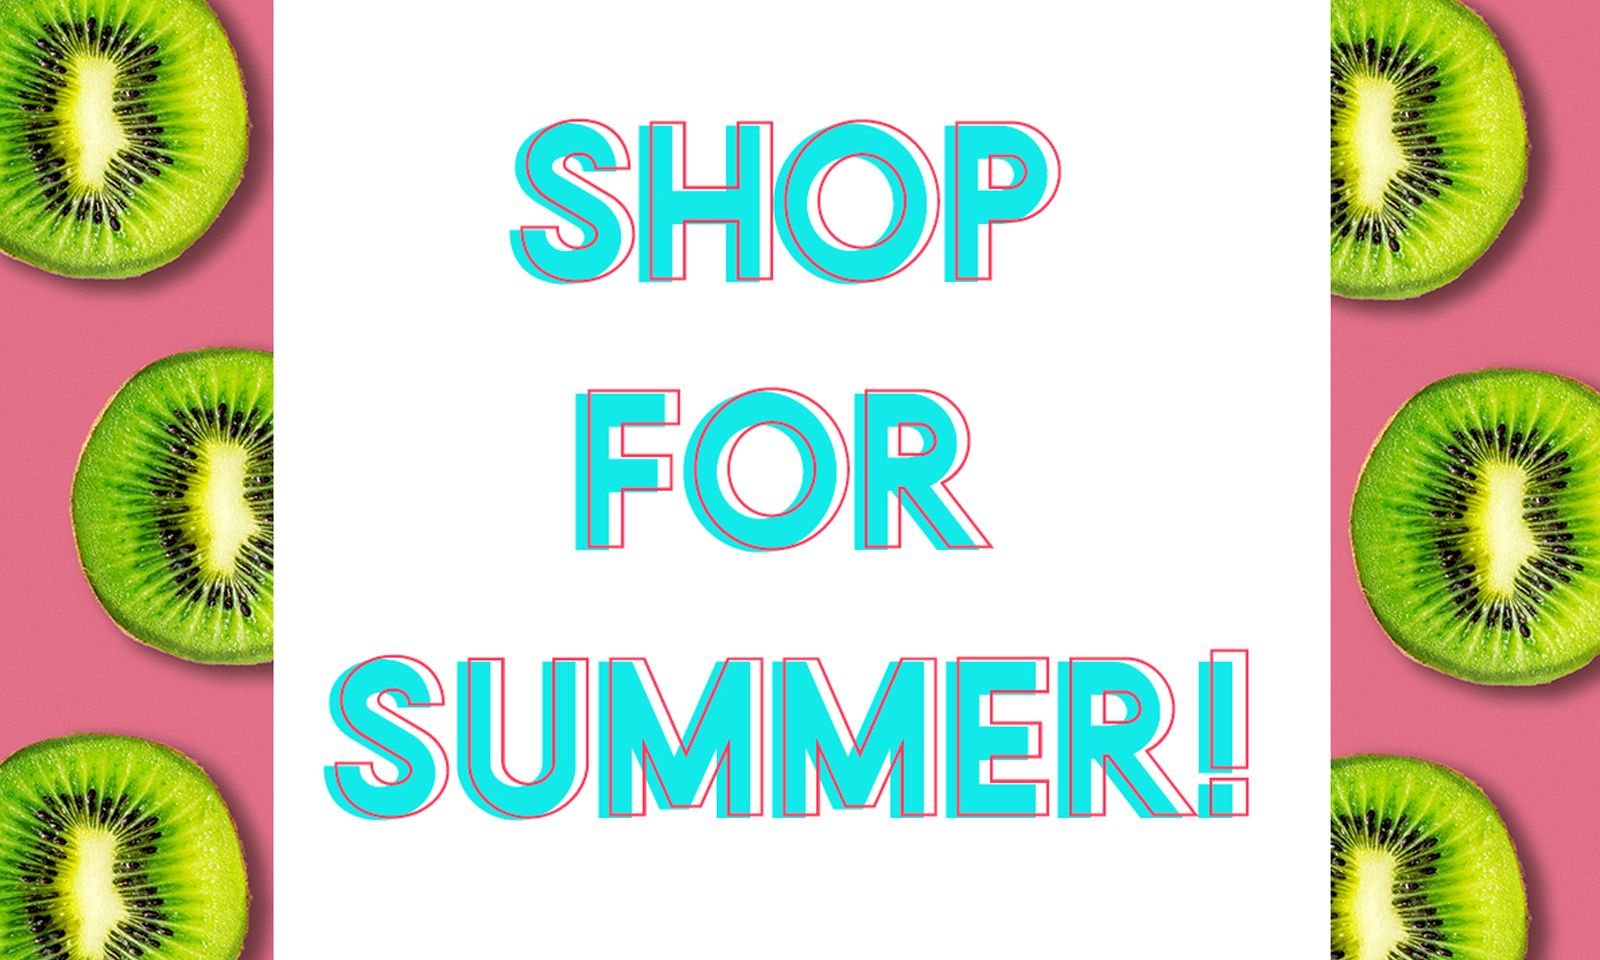 FREE Summer Graphics + Gifs for Your Ecommerce Store